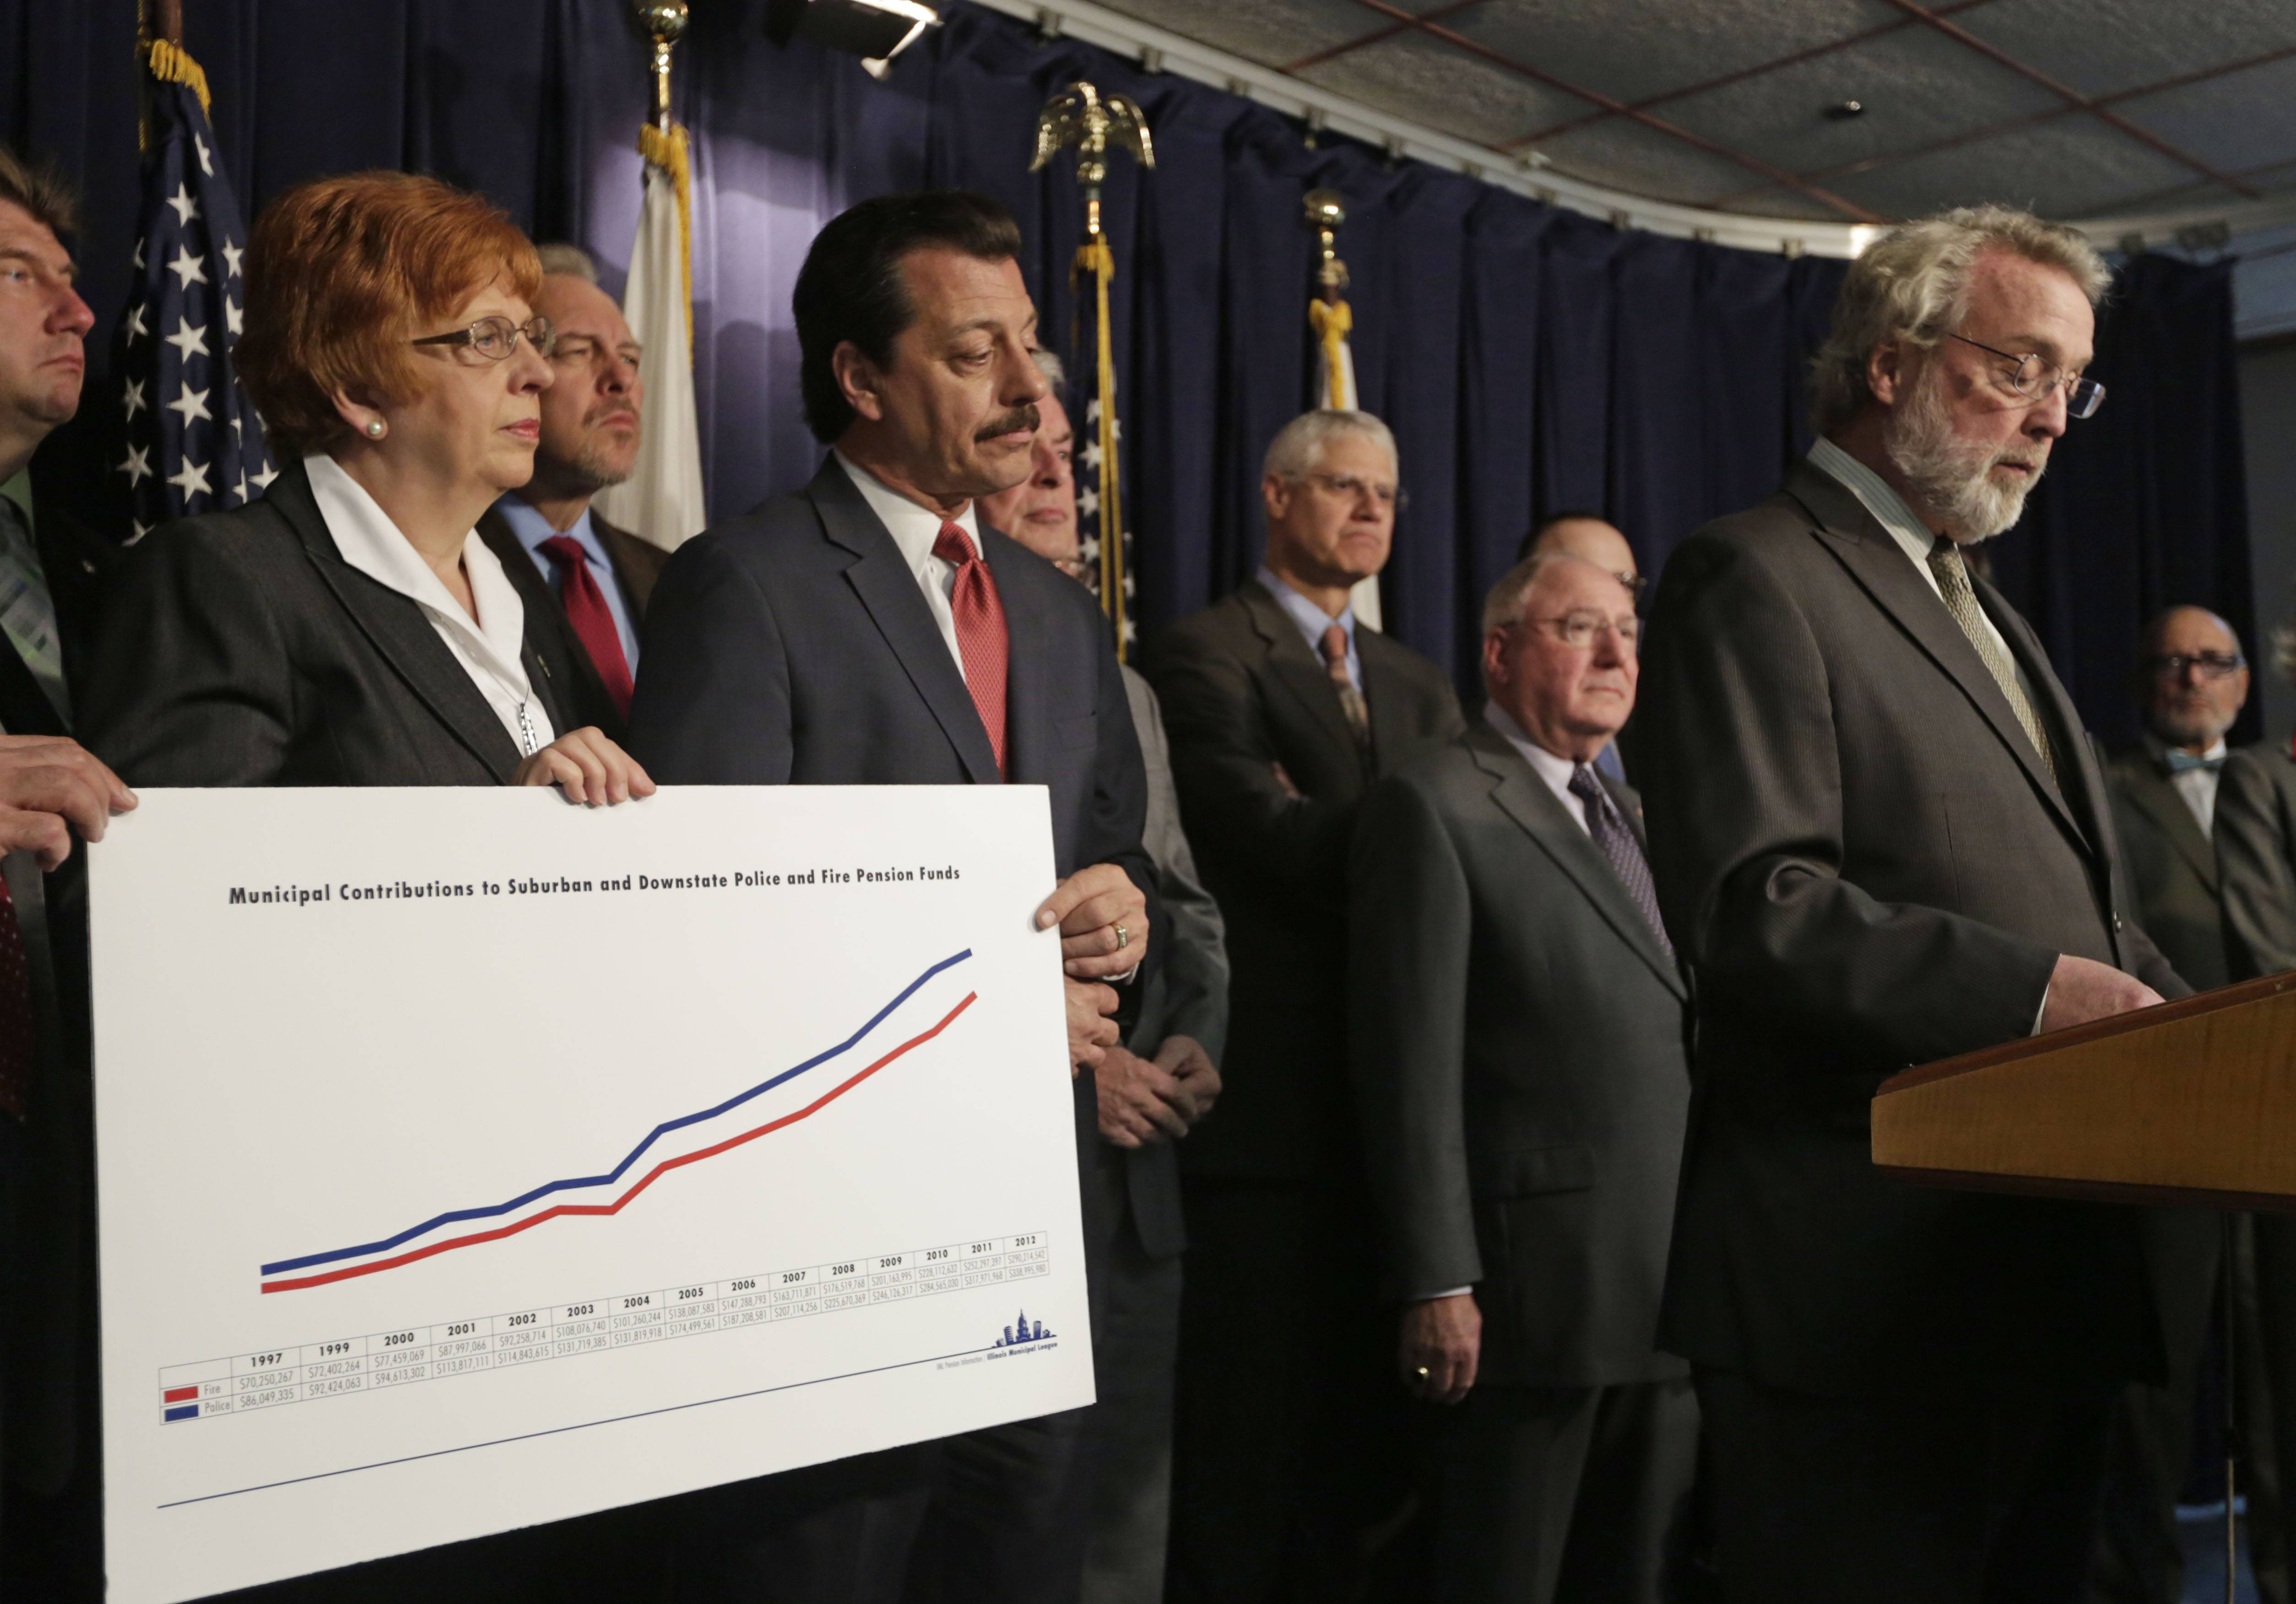 Aurora Mayor Tom Weisner, right, and several other mayors and village presidents from across Illinois, including Mount Prospect's Arlene Juracek and Wheeling's Dean Argiris, holding the graphic at left, call for state lawmakers to overhaul local pension systems for police and fire departments during a news conference Monday in Chicago.